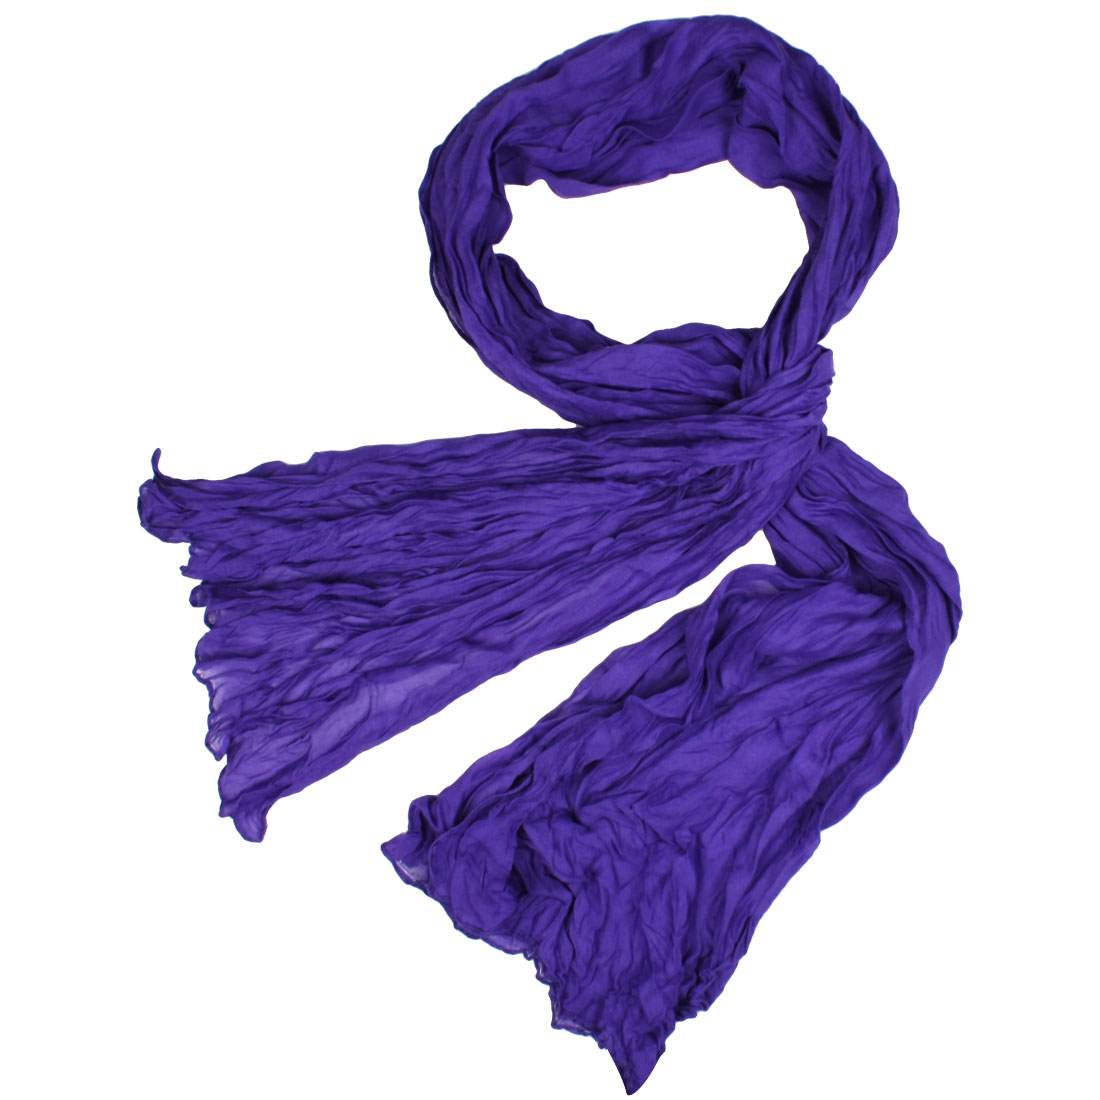 "Lady Purple Cotton Blends 69.3"" x 30.7"" Wrinkled Long Scarf Shawl"